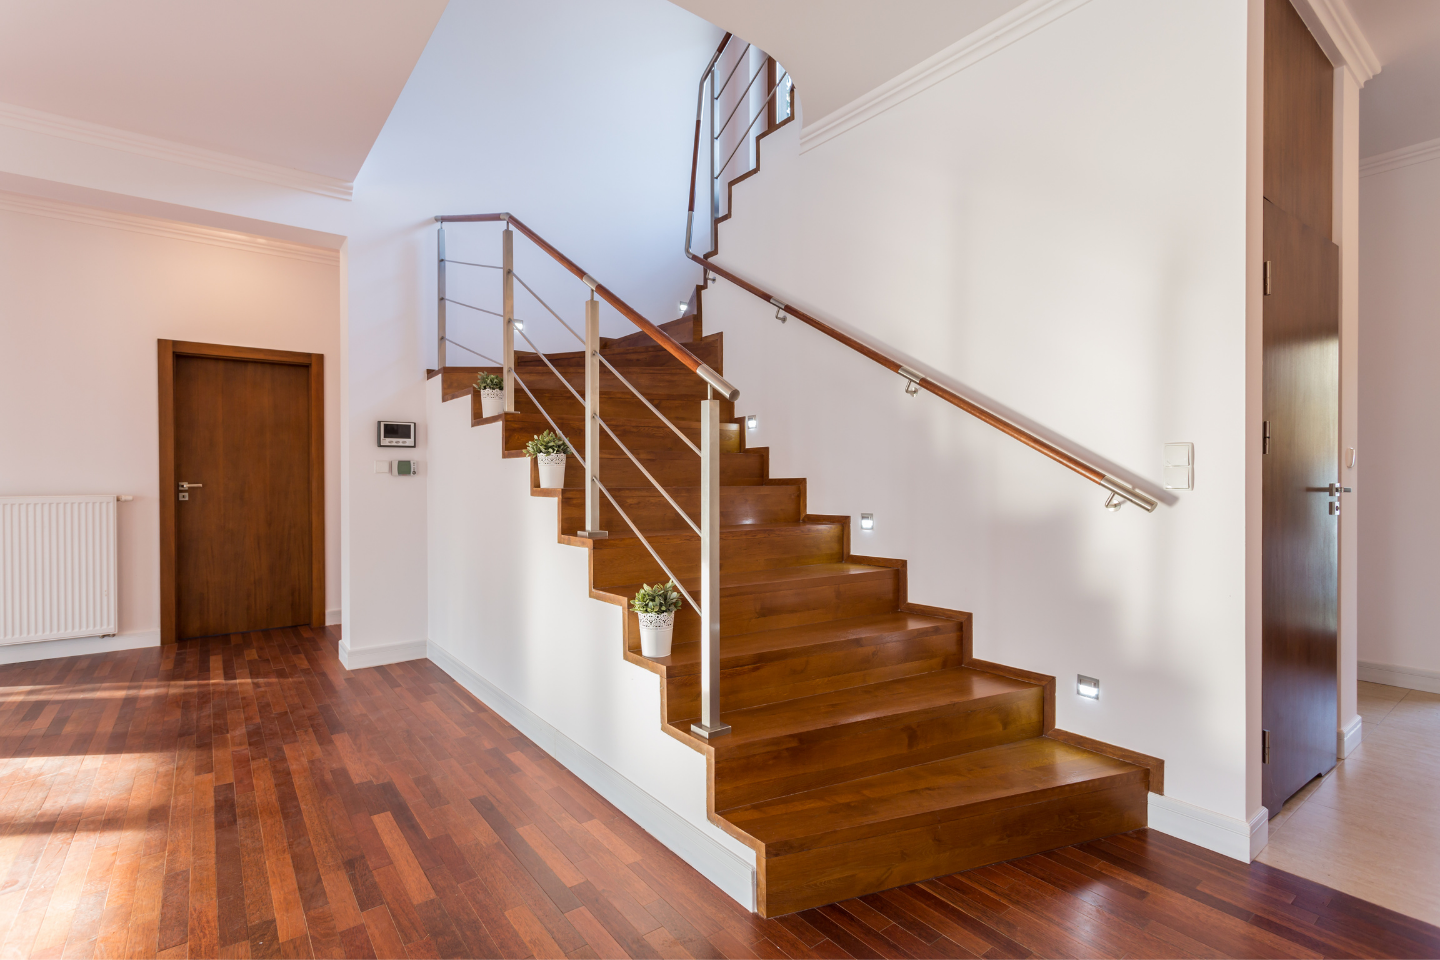 Modern staircase with wood and metal